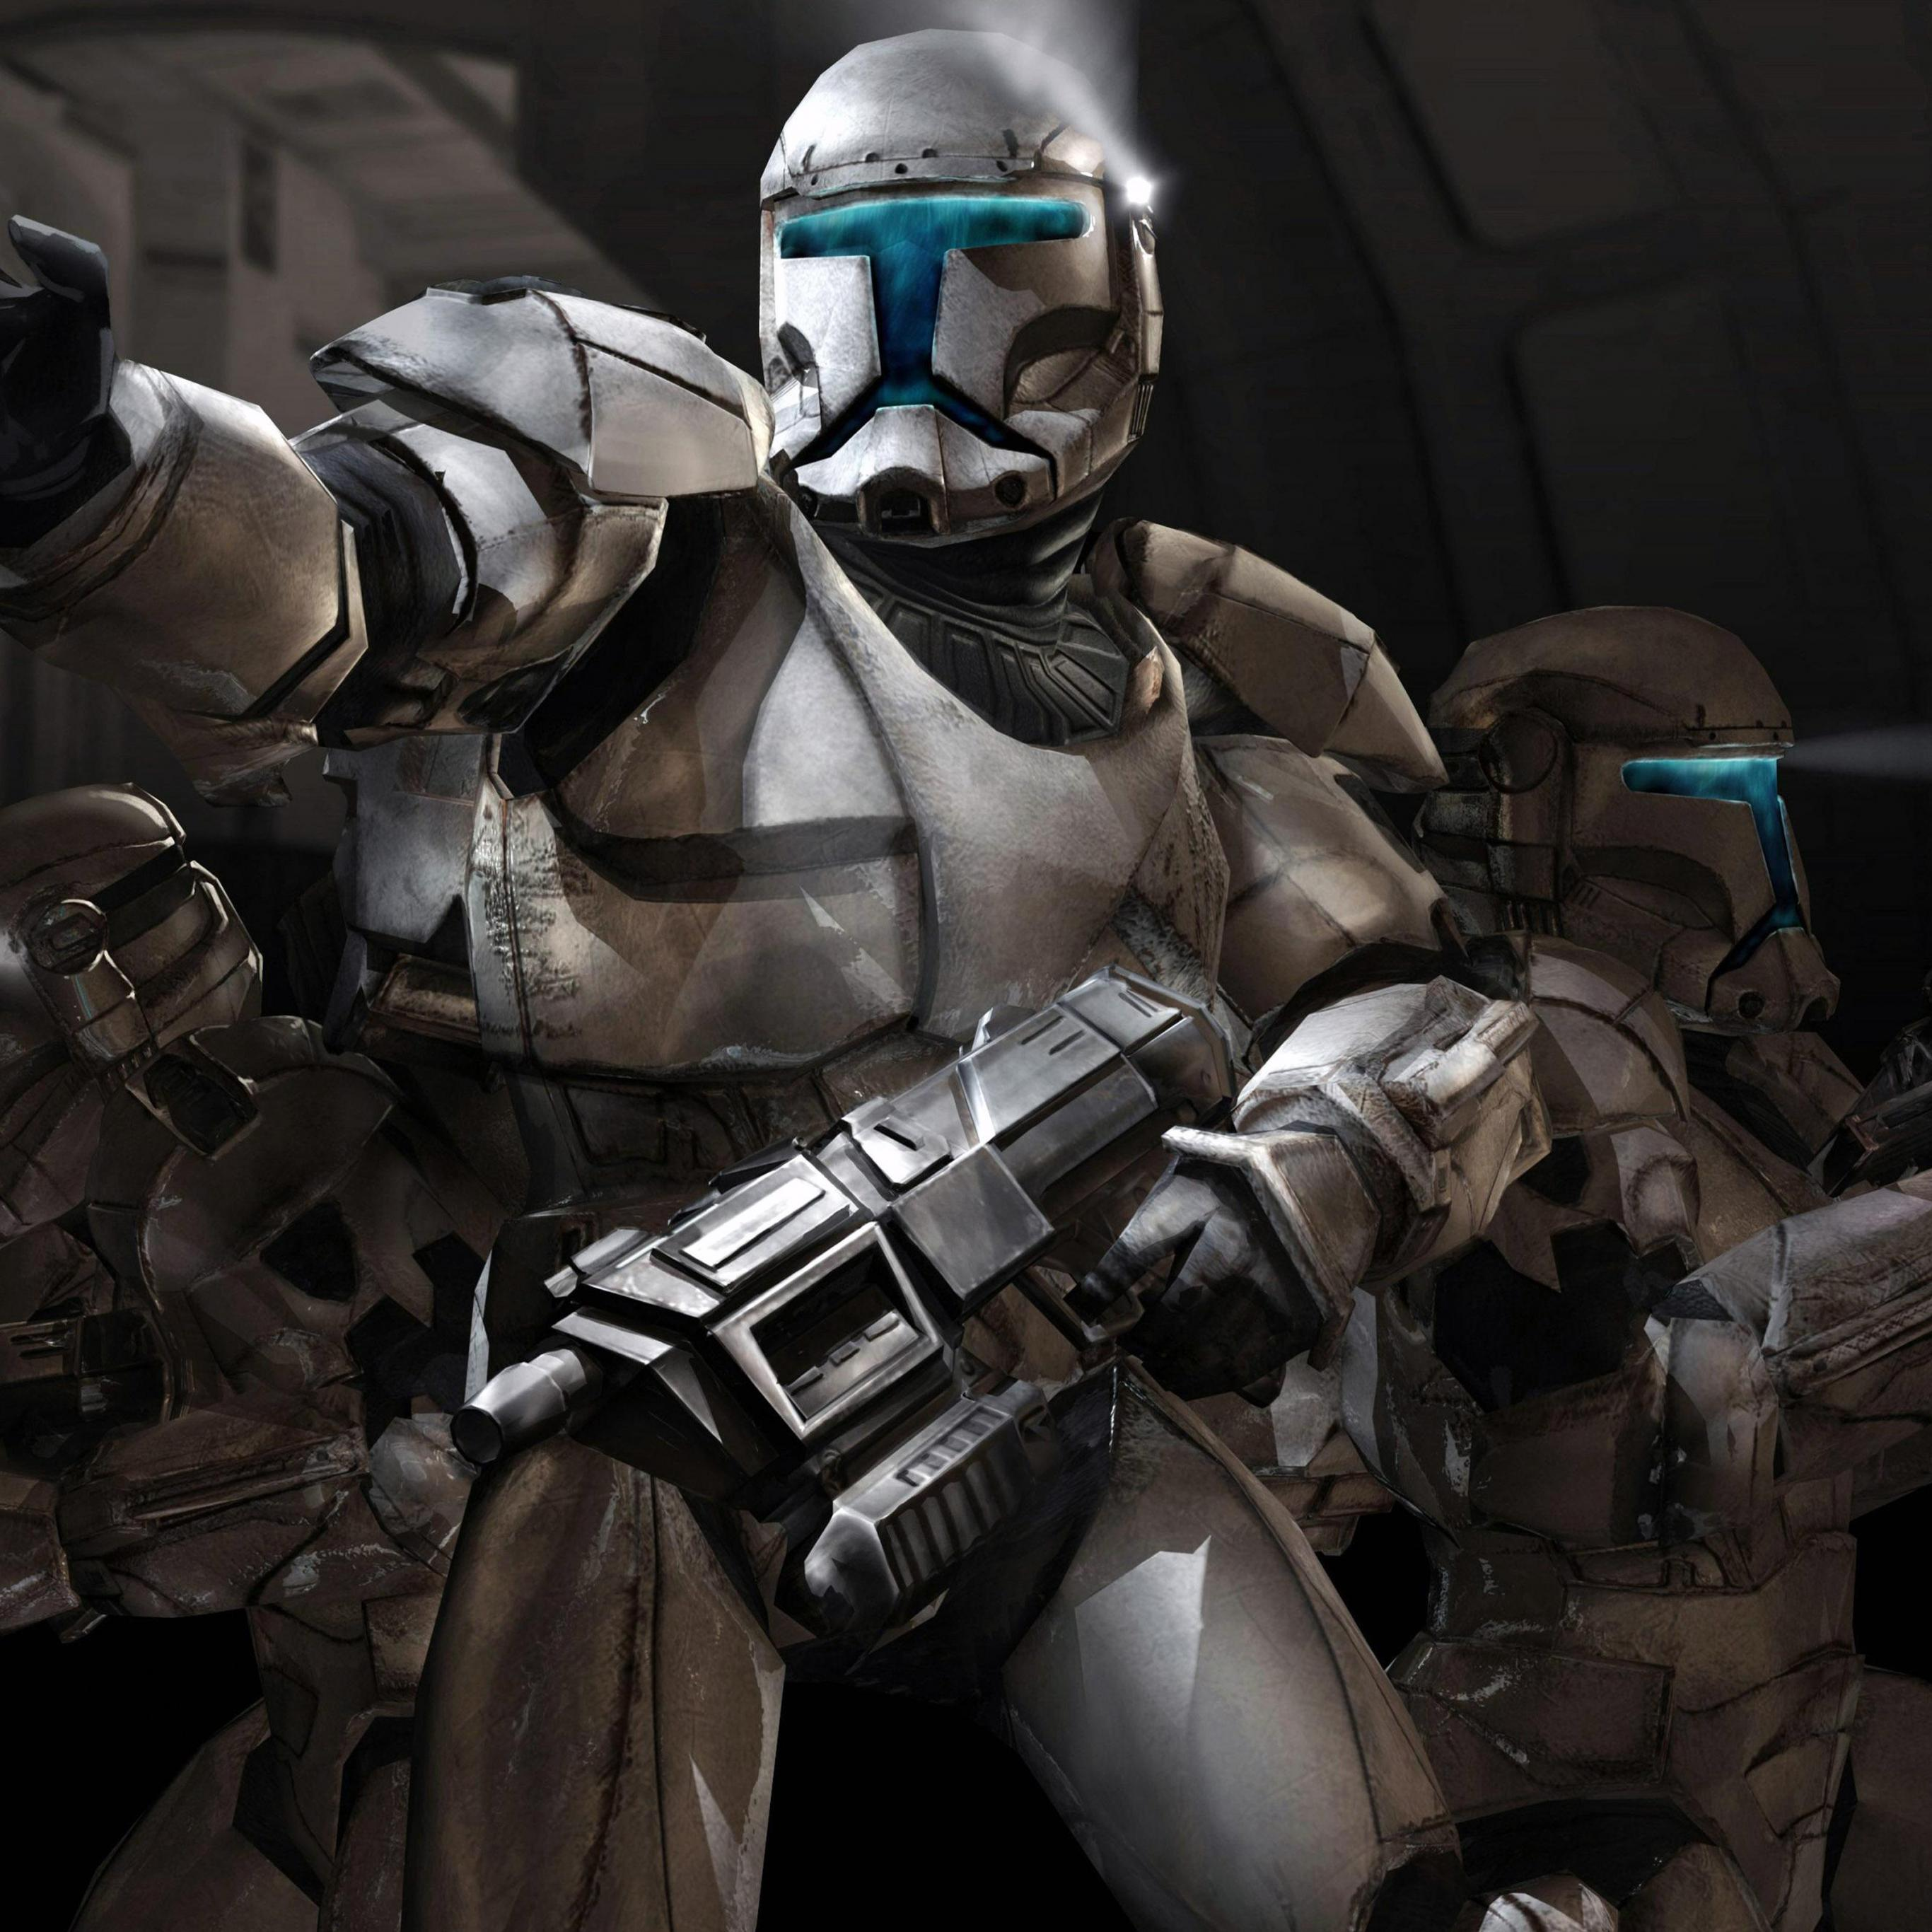 Stunning Star Wars Clone Trooper Backgrounds